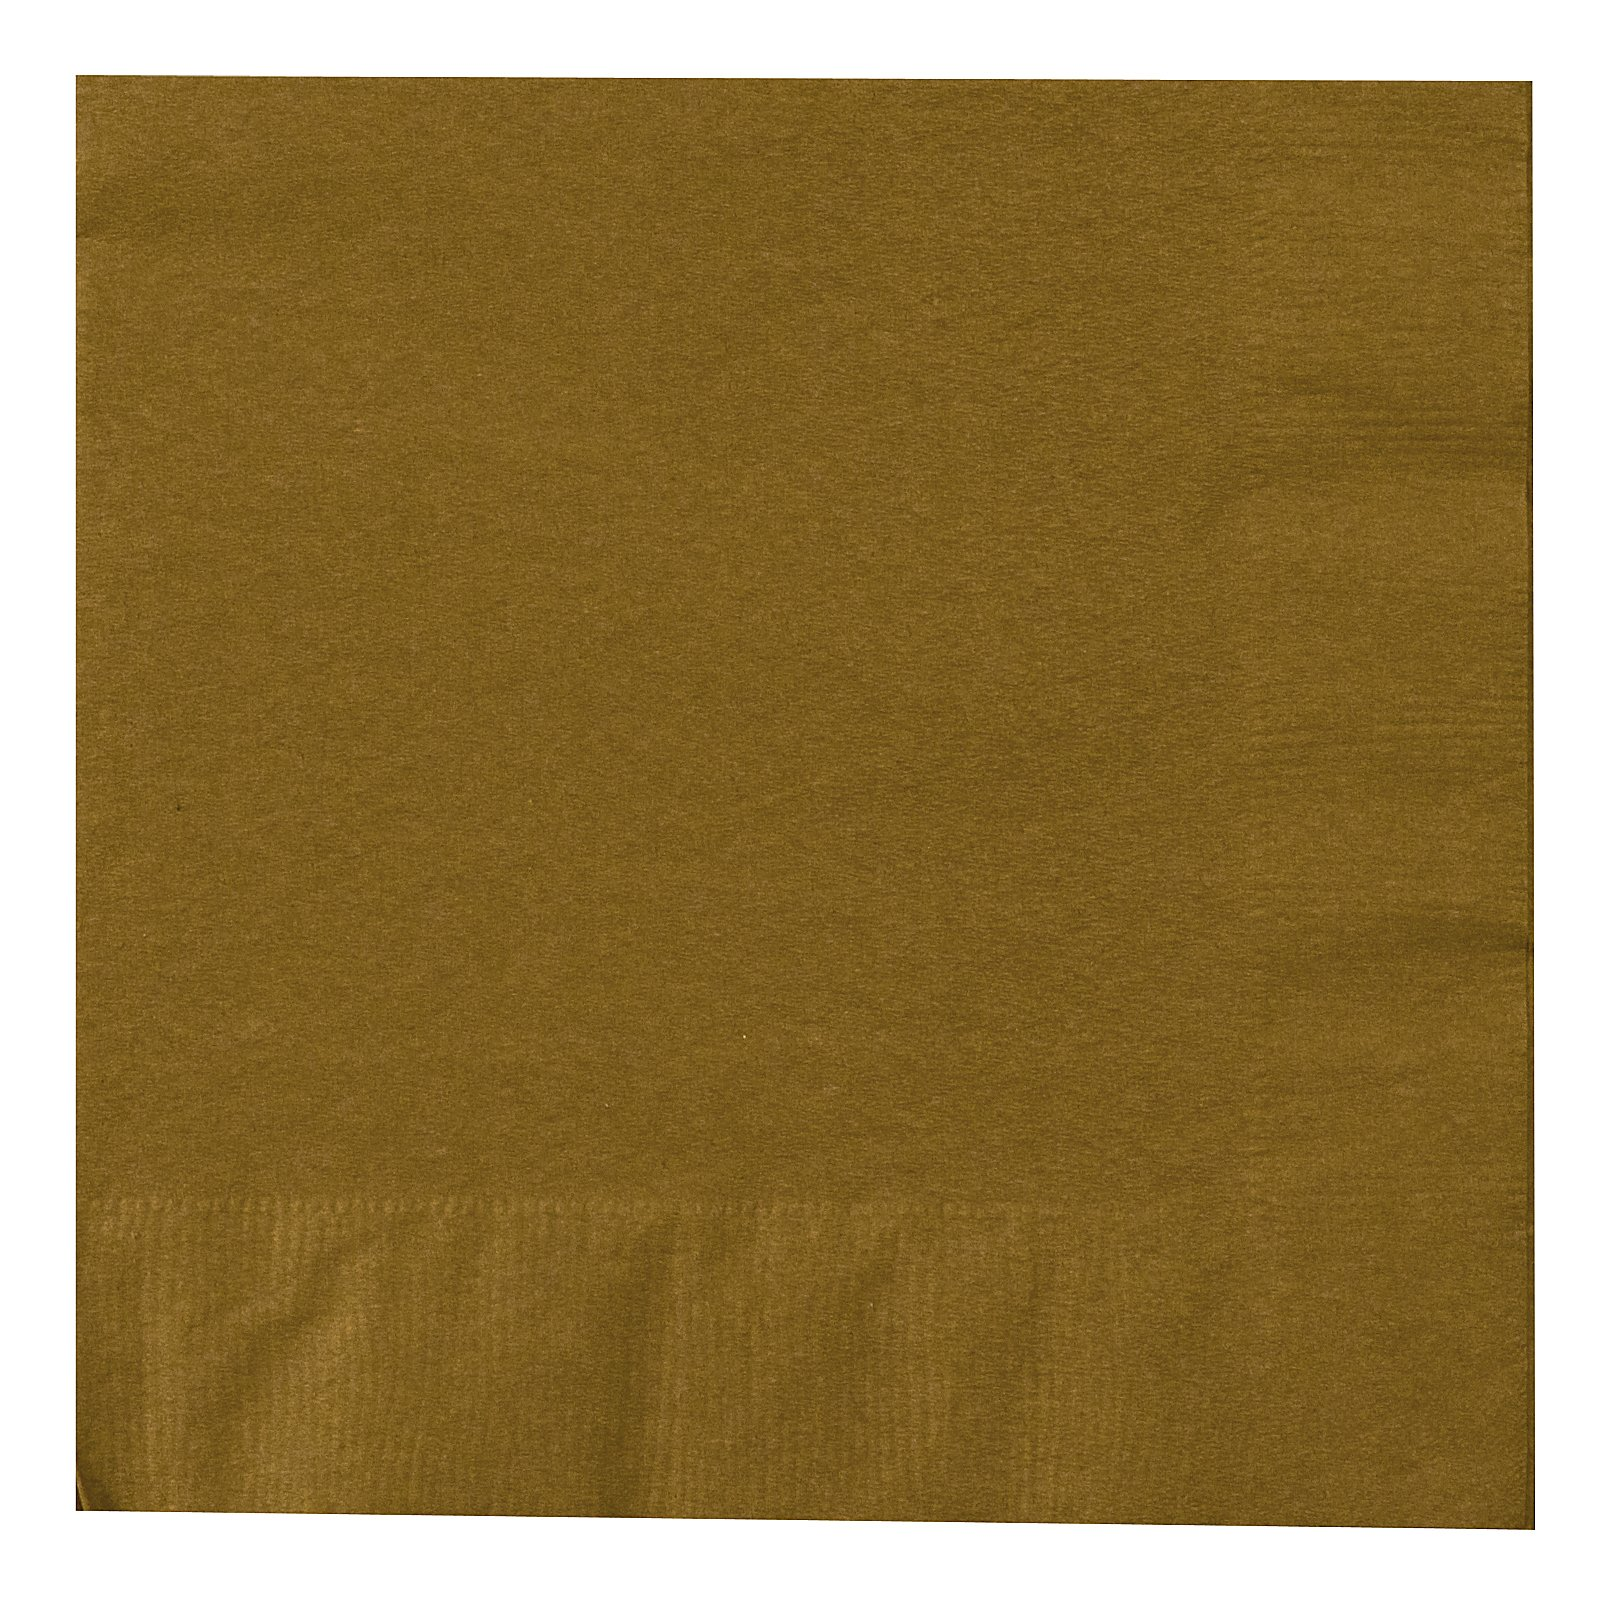 Glittering Gold (Gold) Lunch Napkins (50 count)